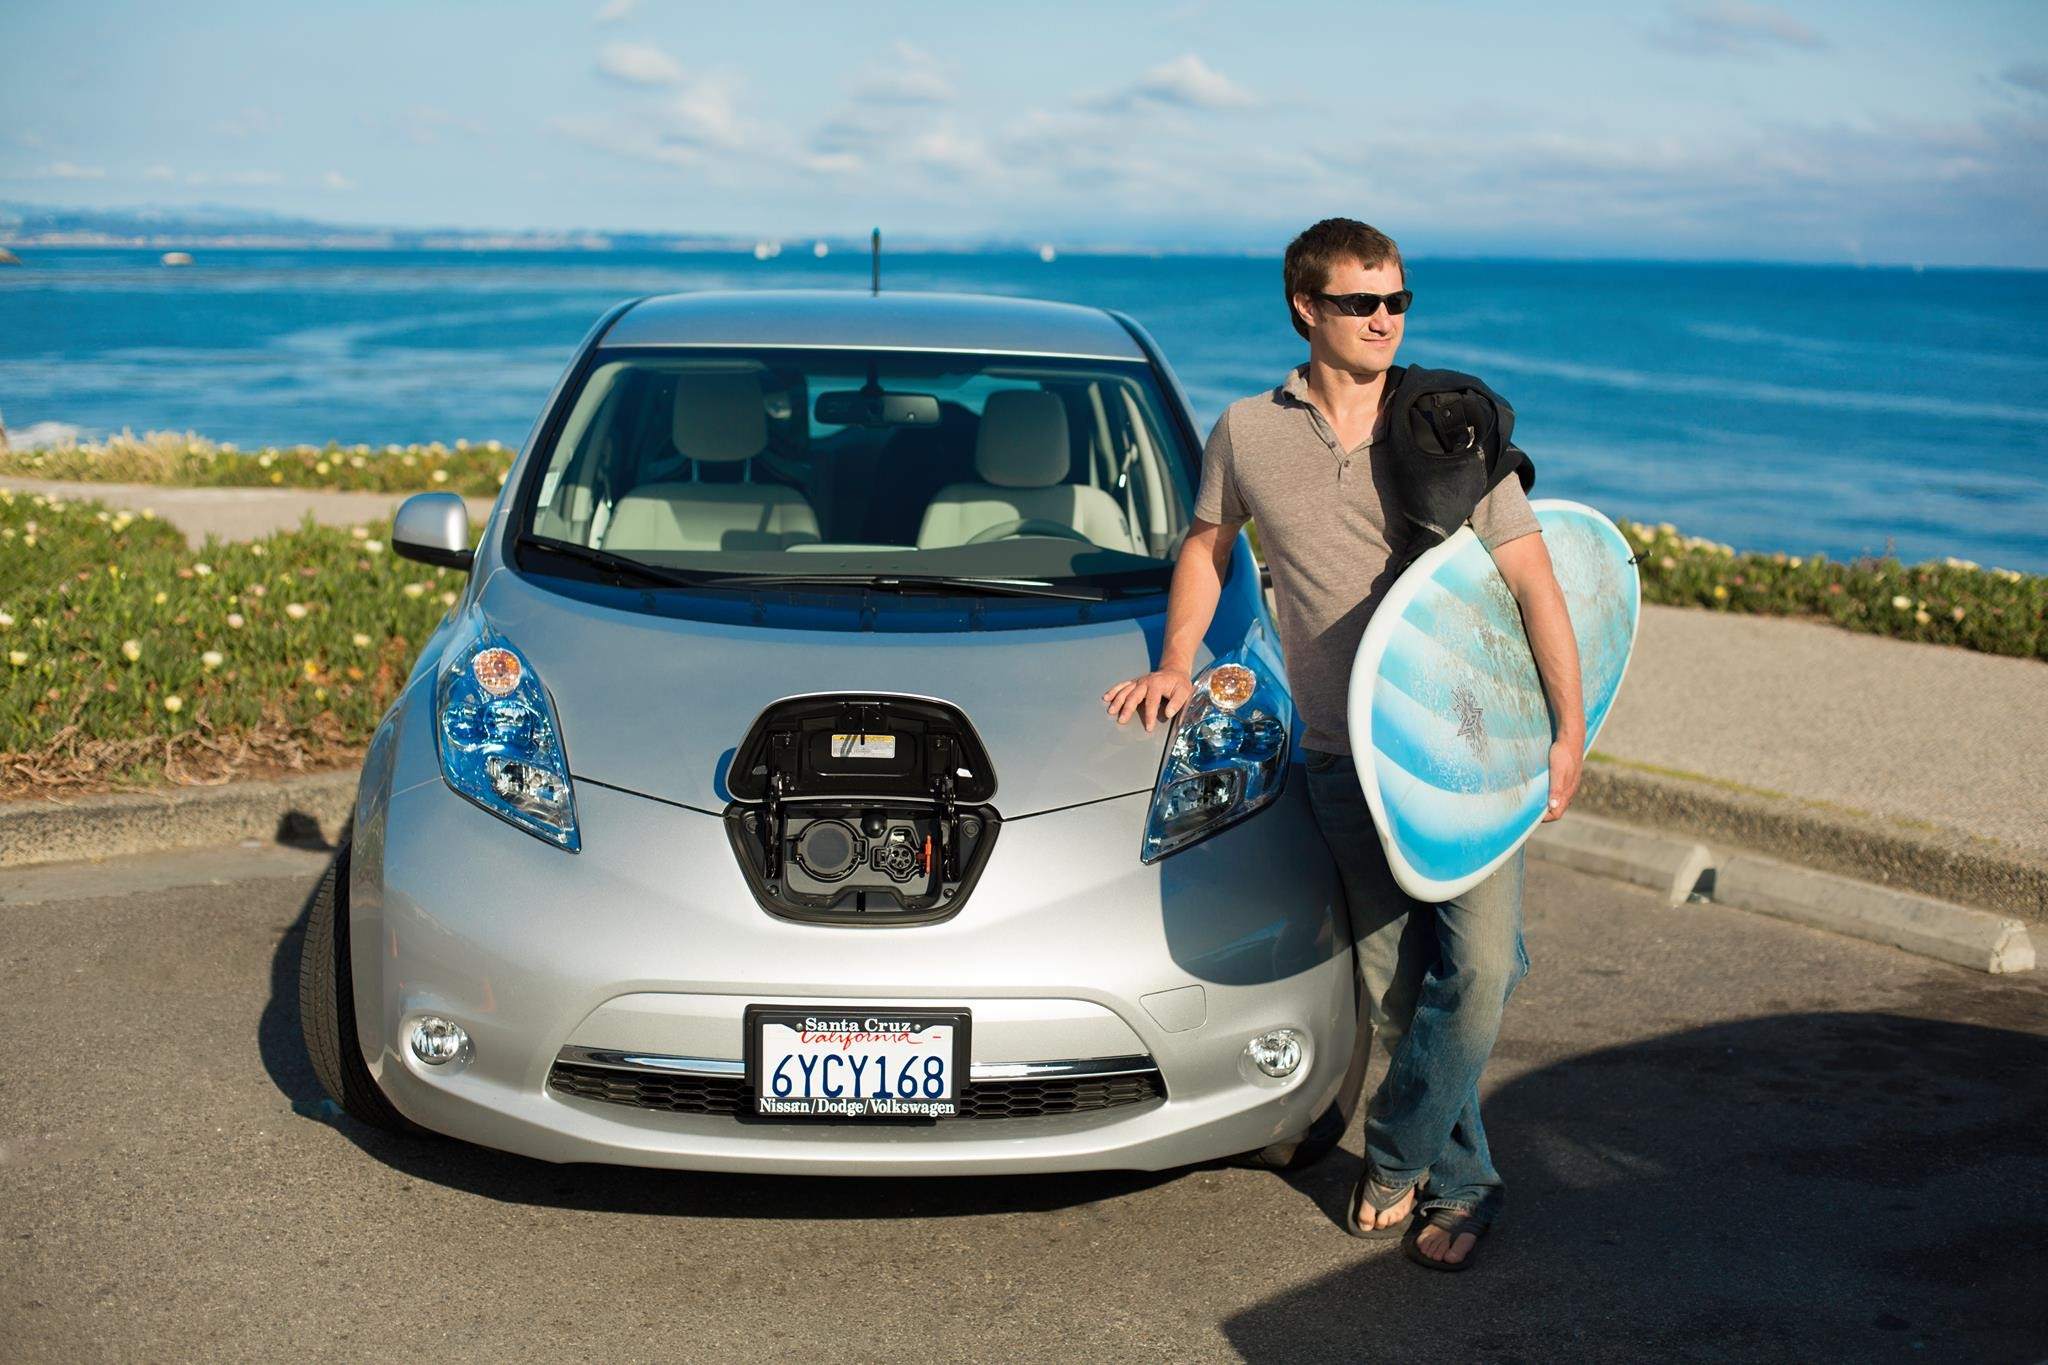 Rebates for 238 mile ev could help santa cruz carbon footprint santa cruz waves